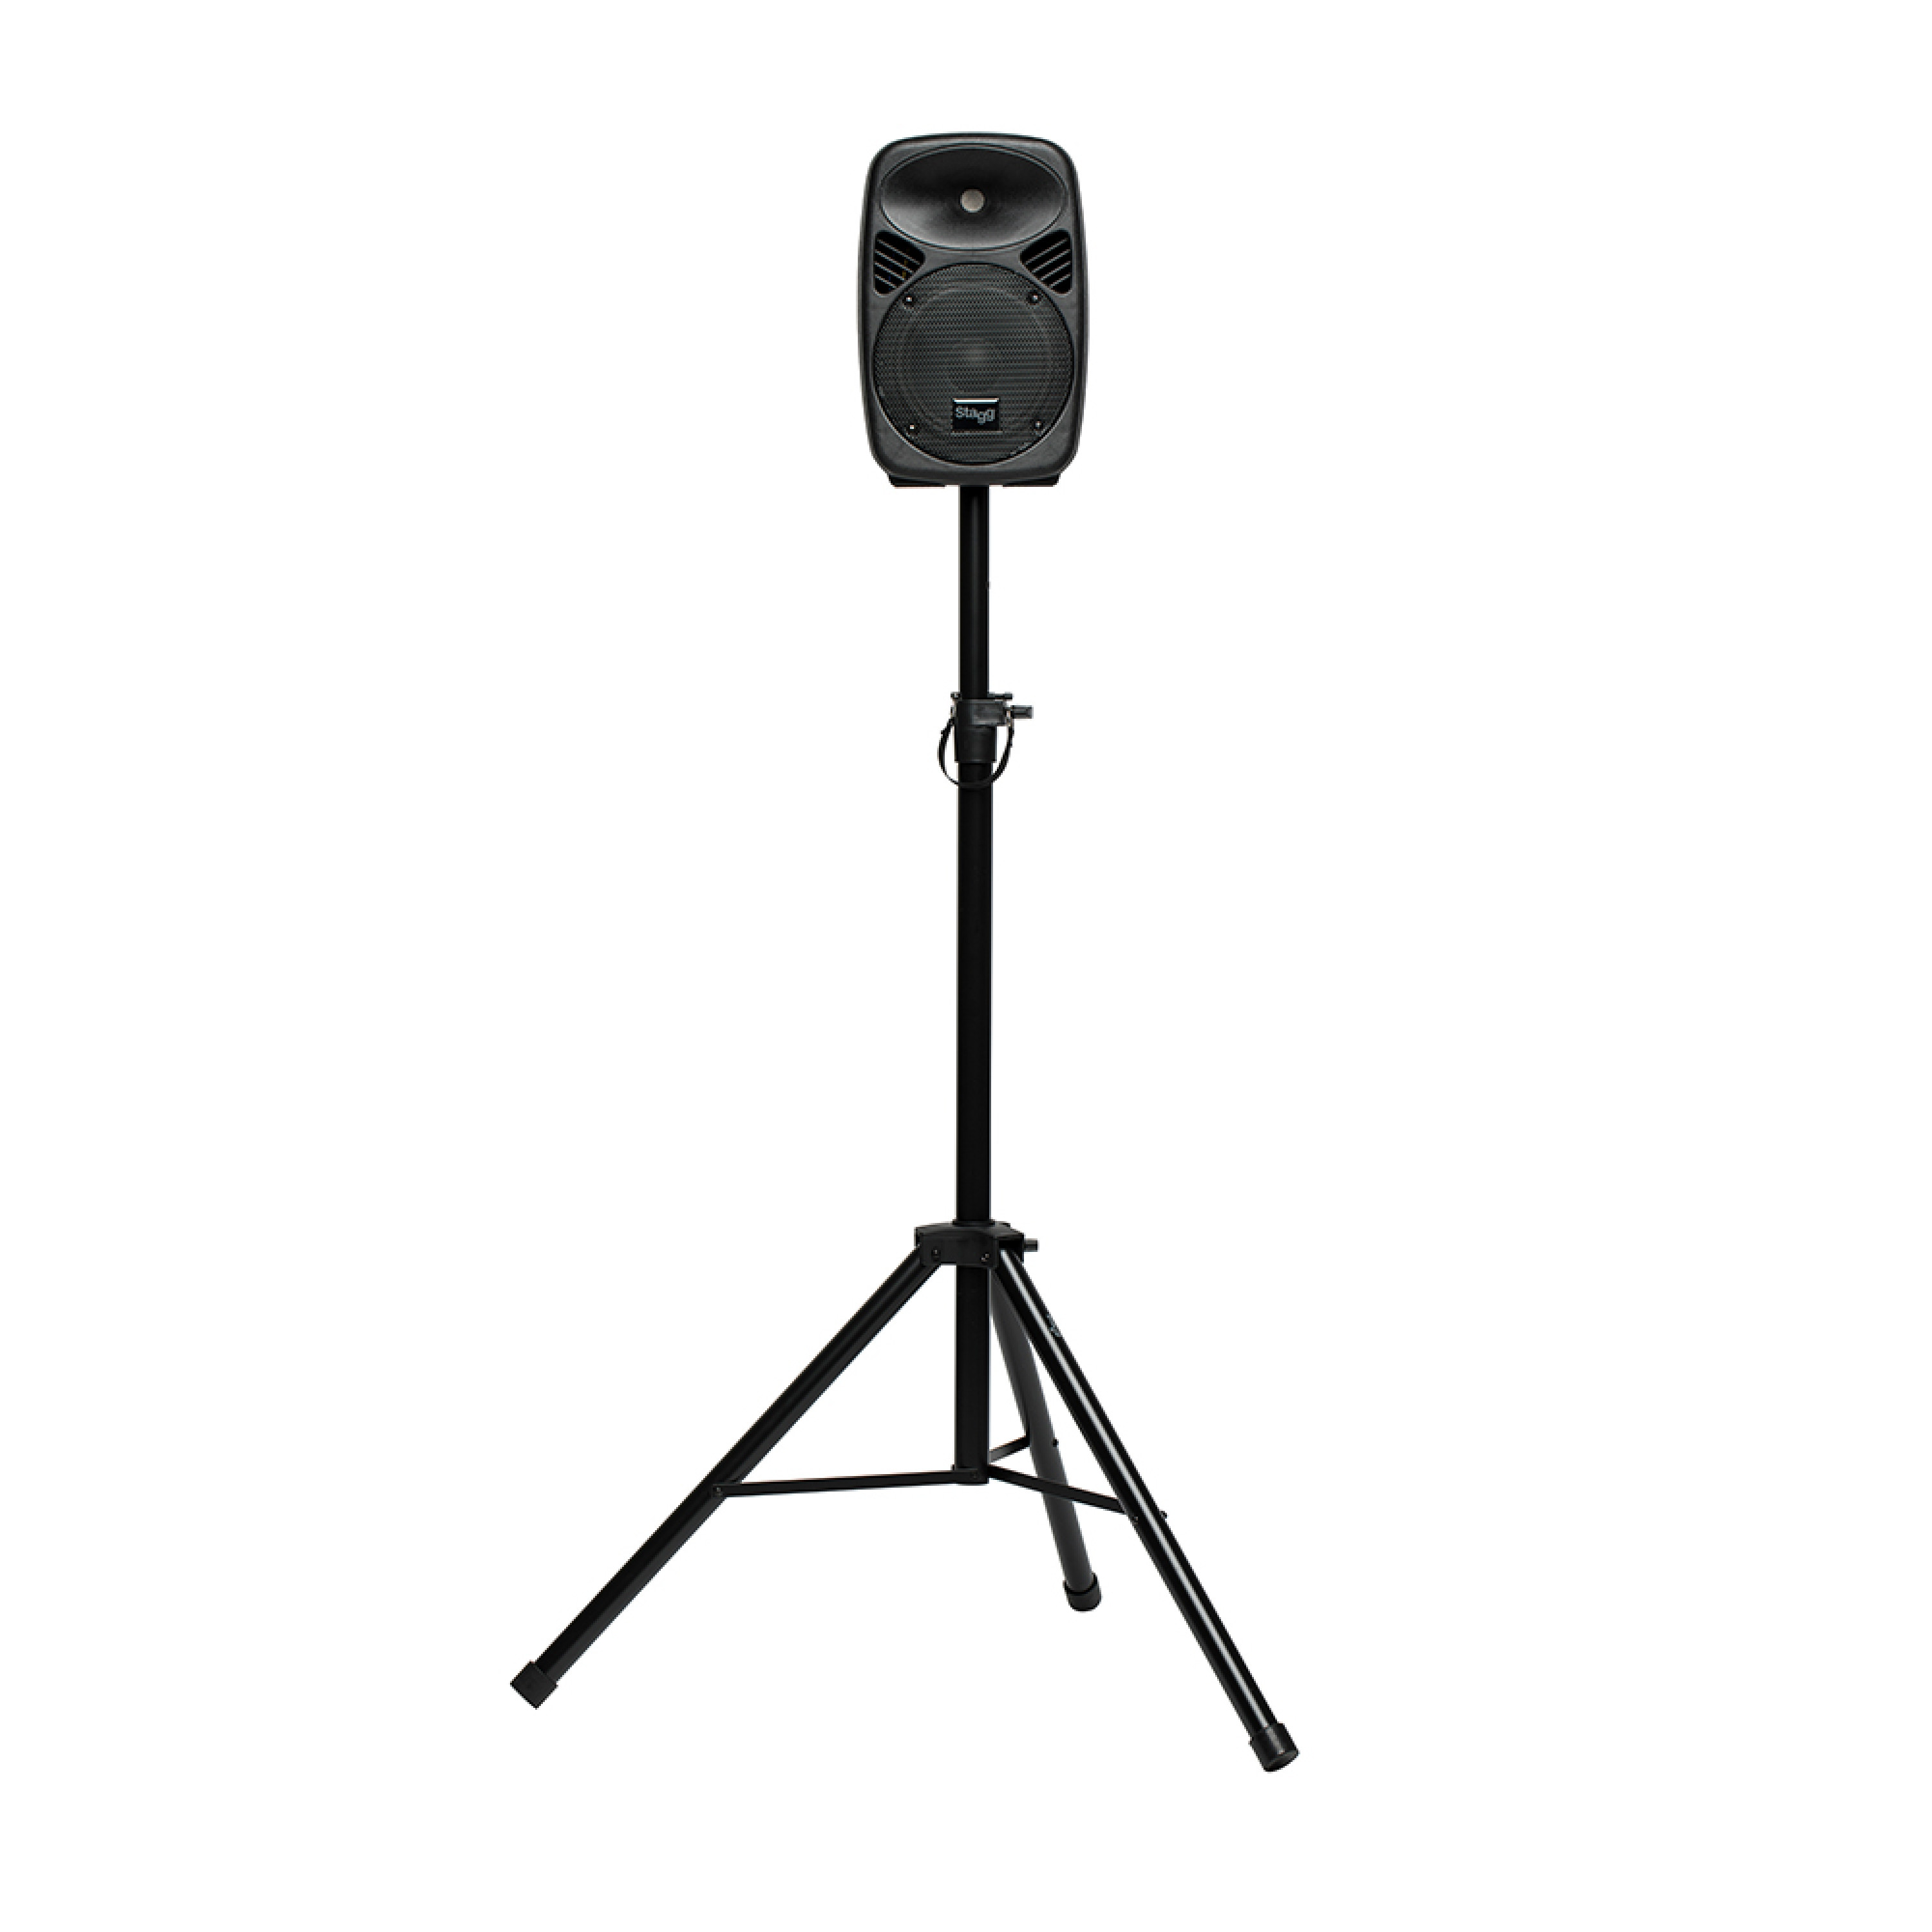 STAGG SPSQ10 Speaker Stands with carry bag